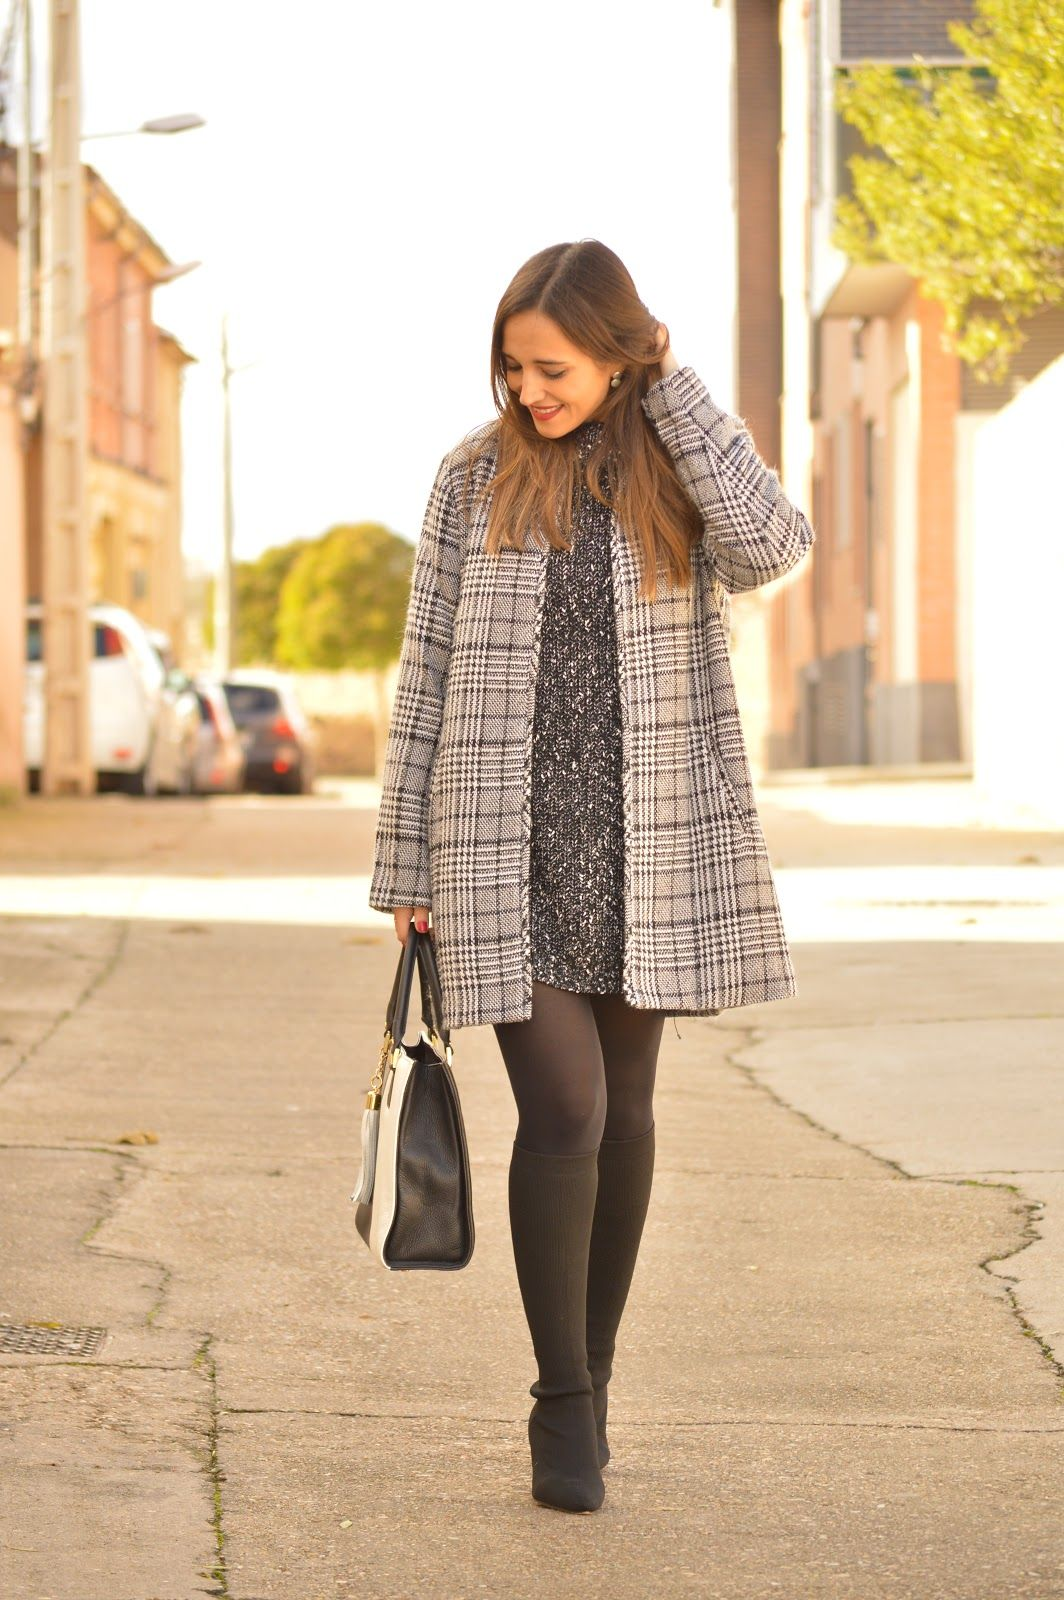 1aa12e16e24 Grey tweed dress+black tights+black ankle strap heels  pumps+grey plaid  long coat+black and white tote bag  handbag. Fall Workwear Outfit 2018